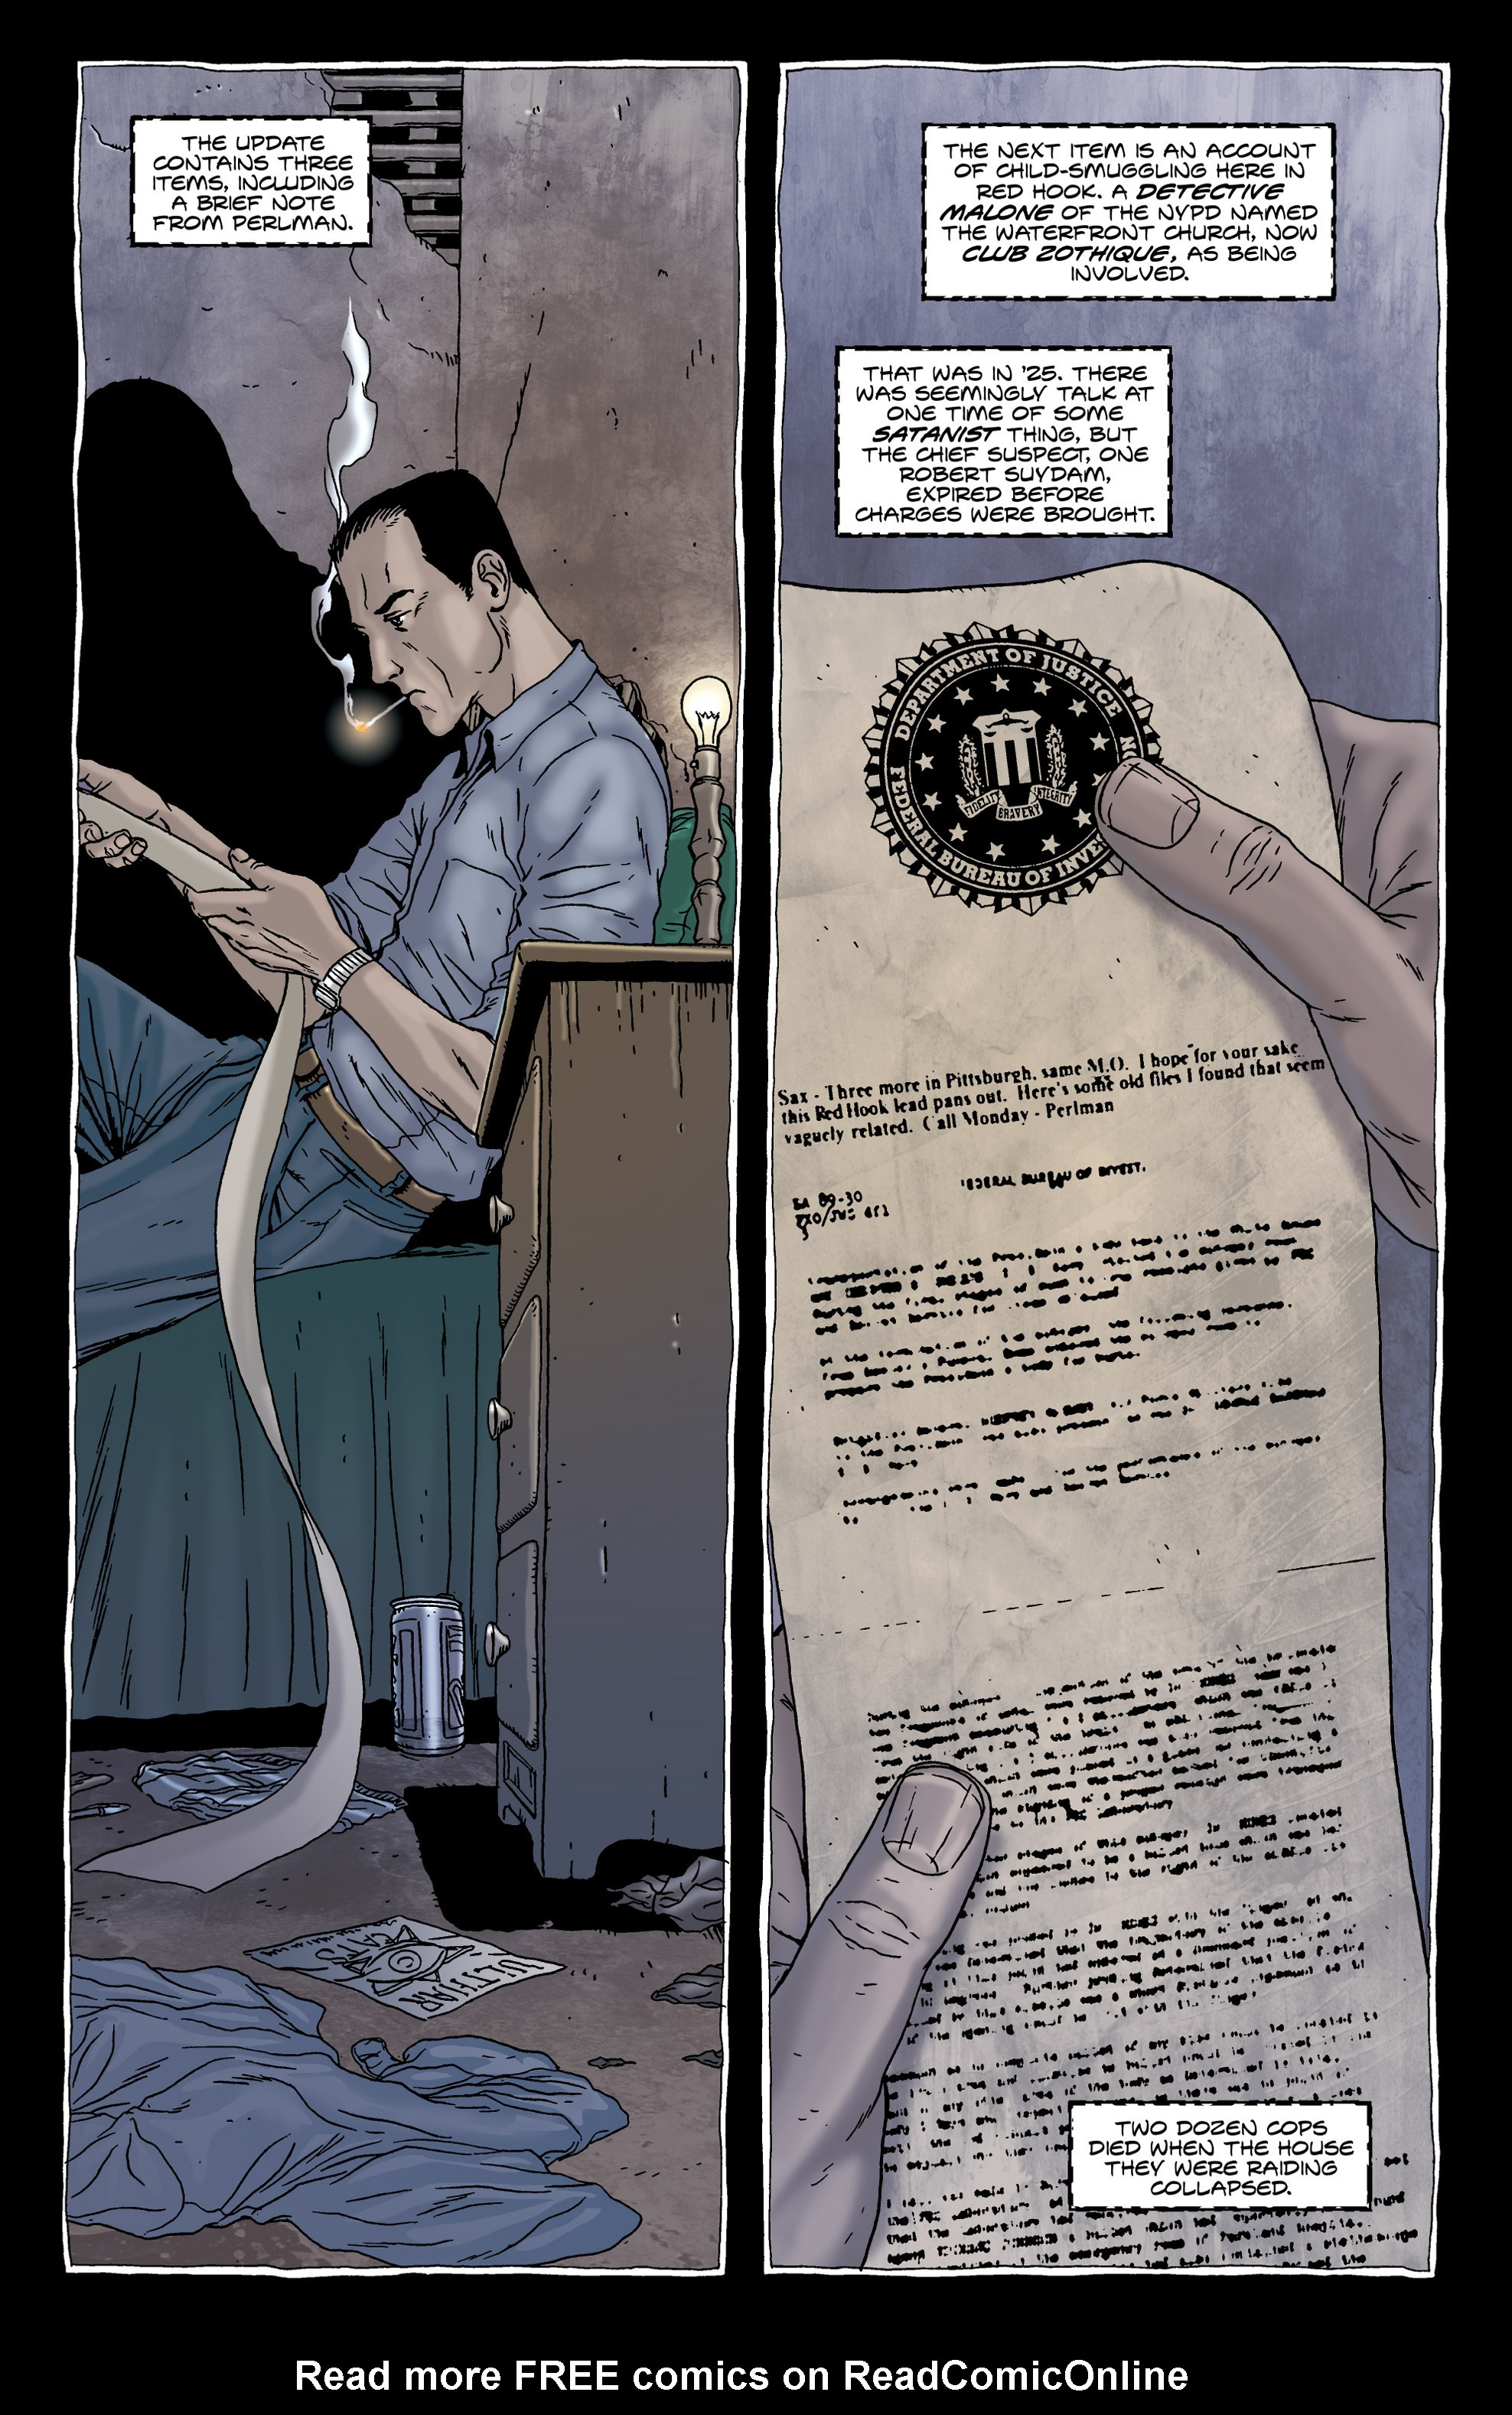 Read online Alan Moore's The Courtyard comic -  Issue # TPB - 27